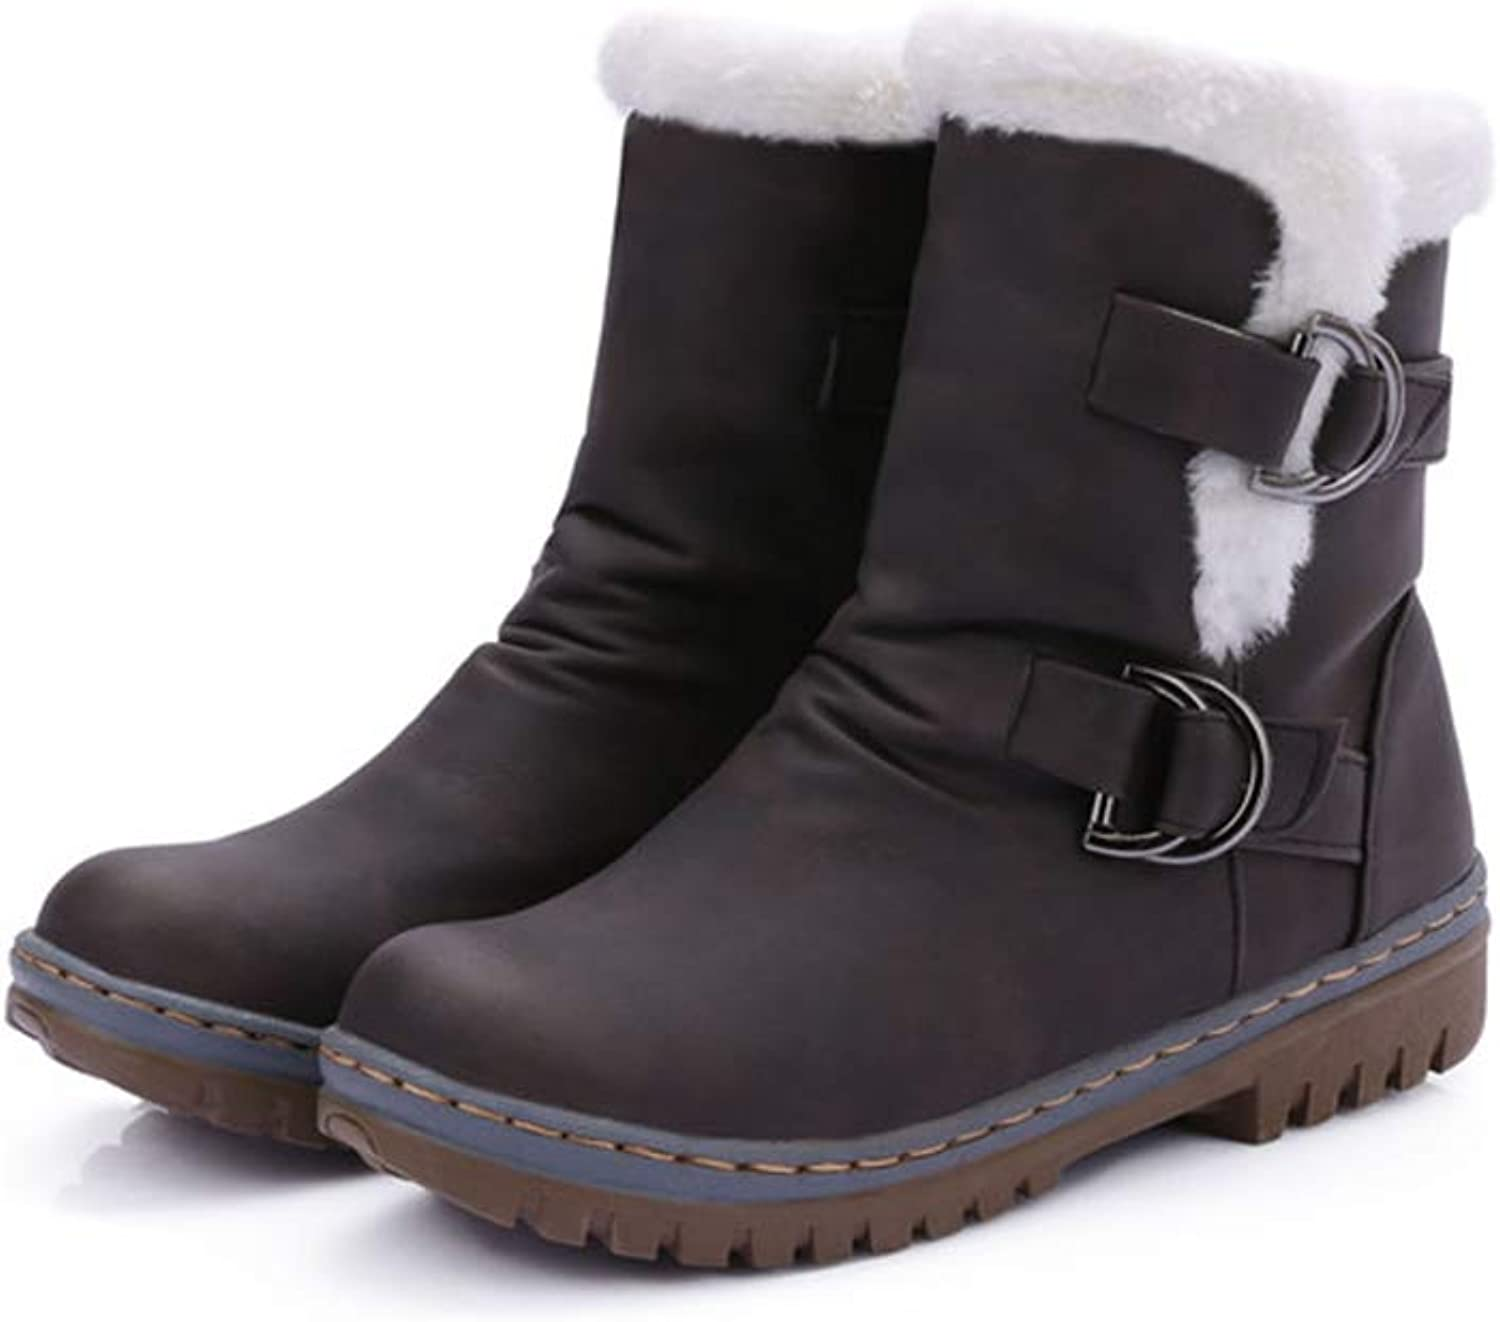 Winter Snow Boots for Women Classic Buckle Riding shoes Wear-Resist Rubber Sole Ankle Booties, Plus Size